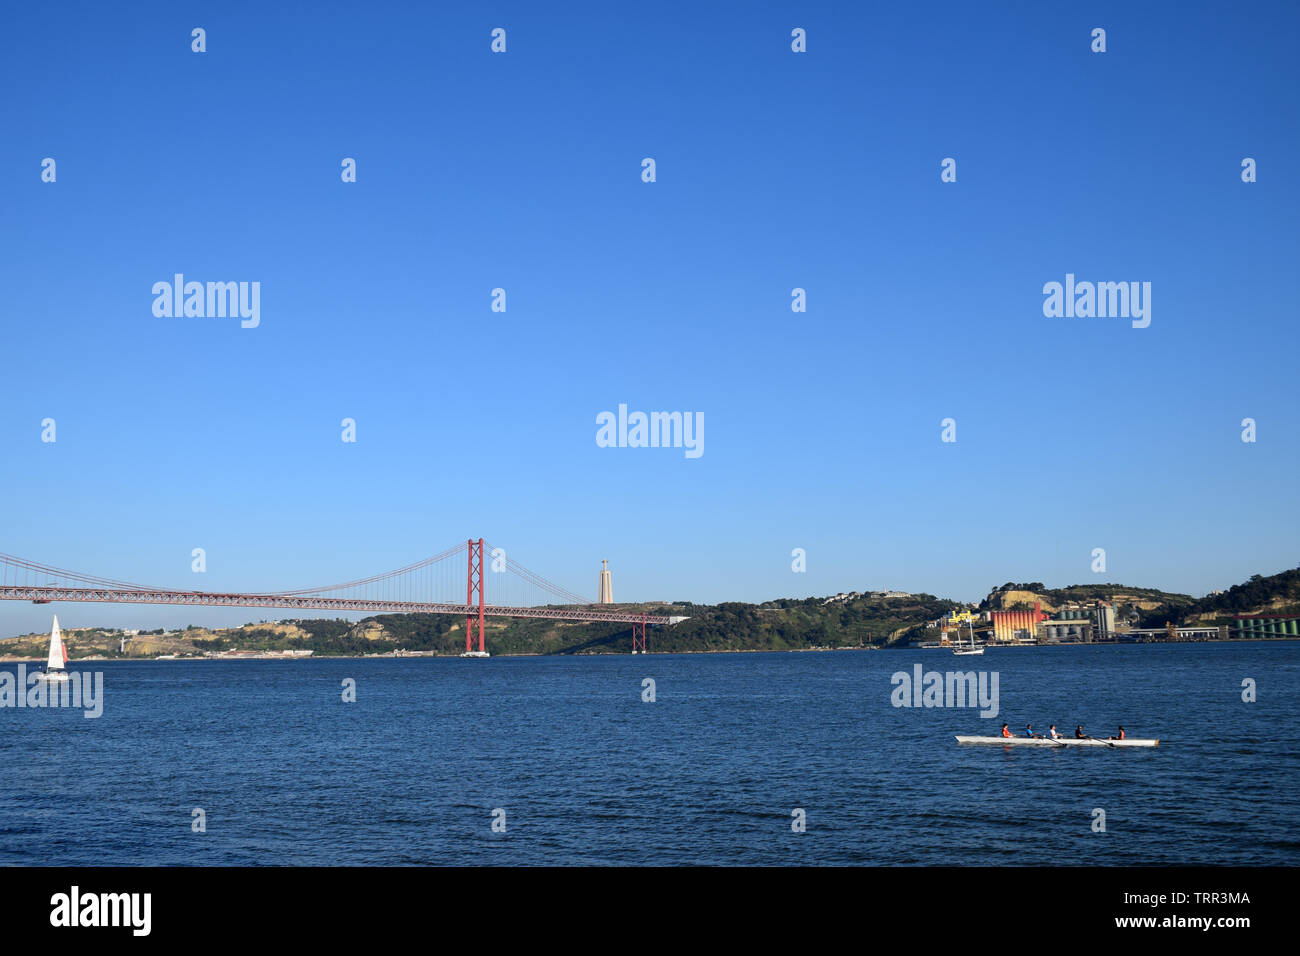 The Ponte 25 de Abril suspension bridge over Tagus River, Lisbon, Portugal, June 2019 Stock Photo